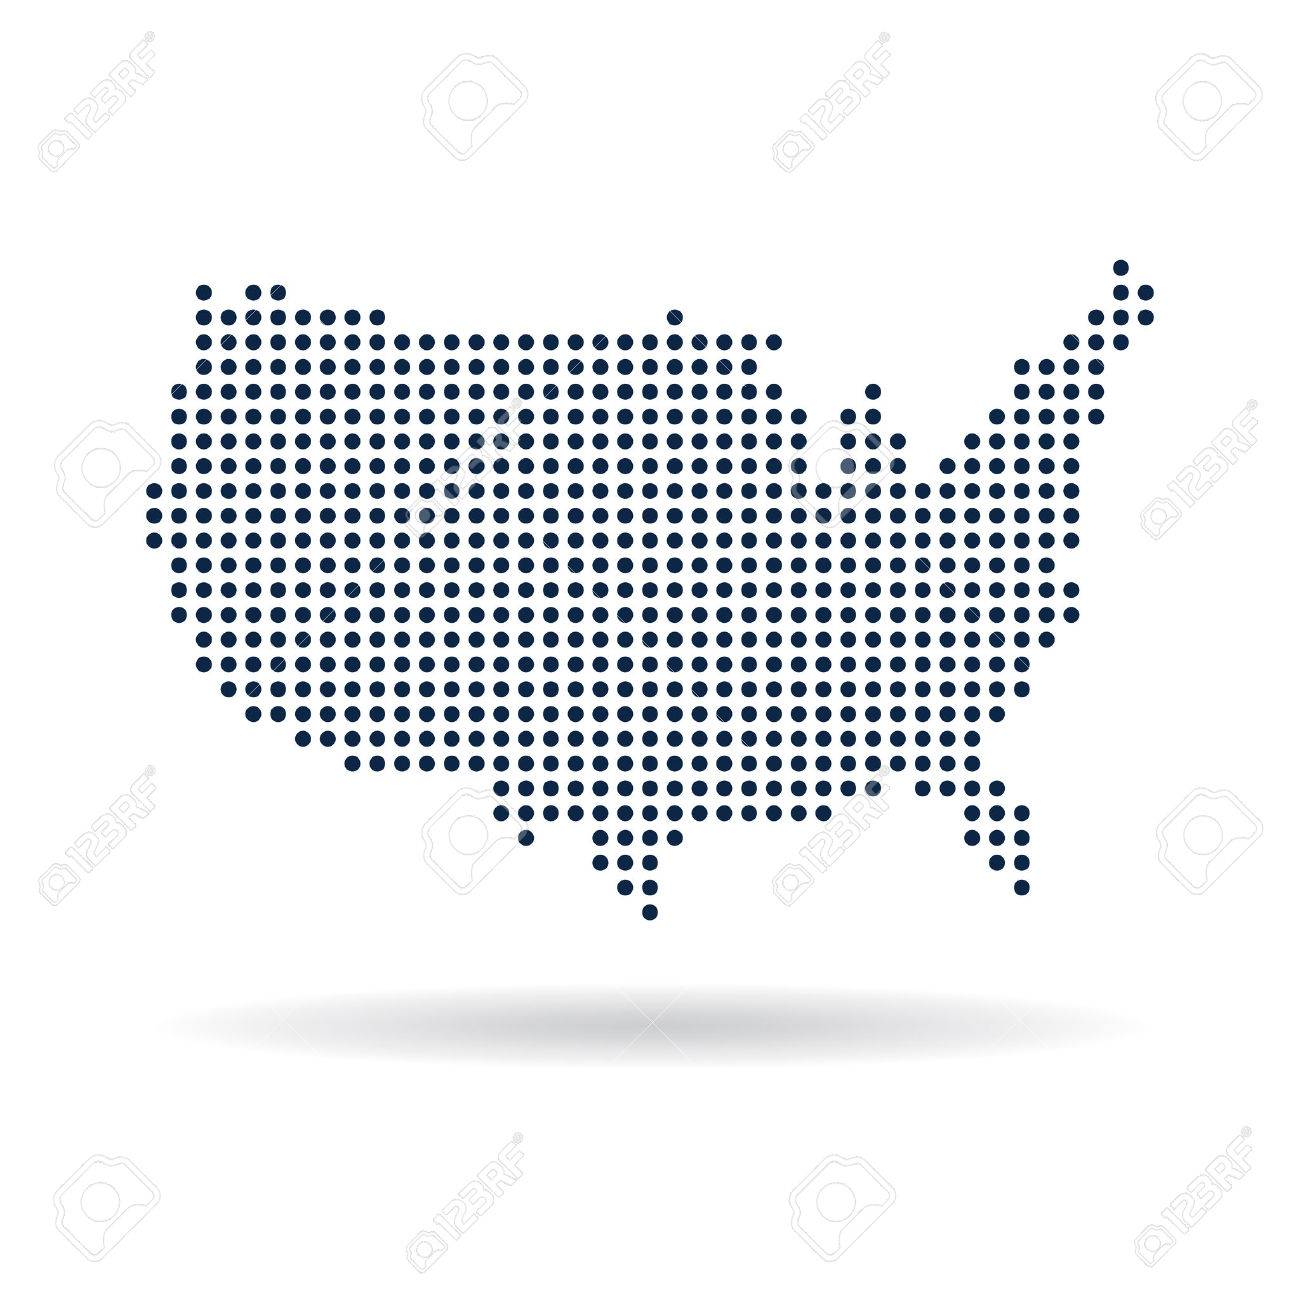 Us Map Stock Photos Royalty Free Us Map Images And Pictures - Us map logo